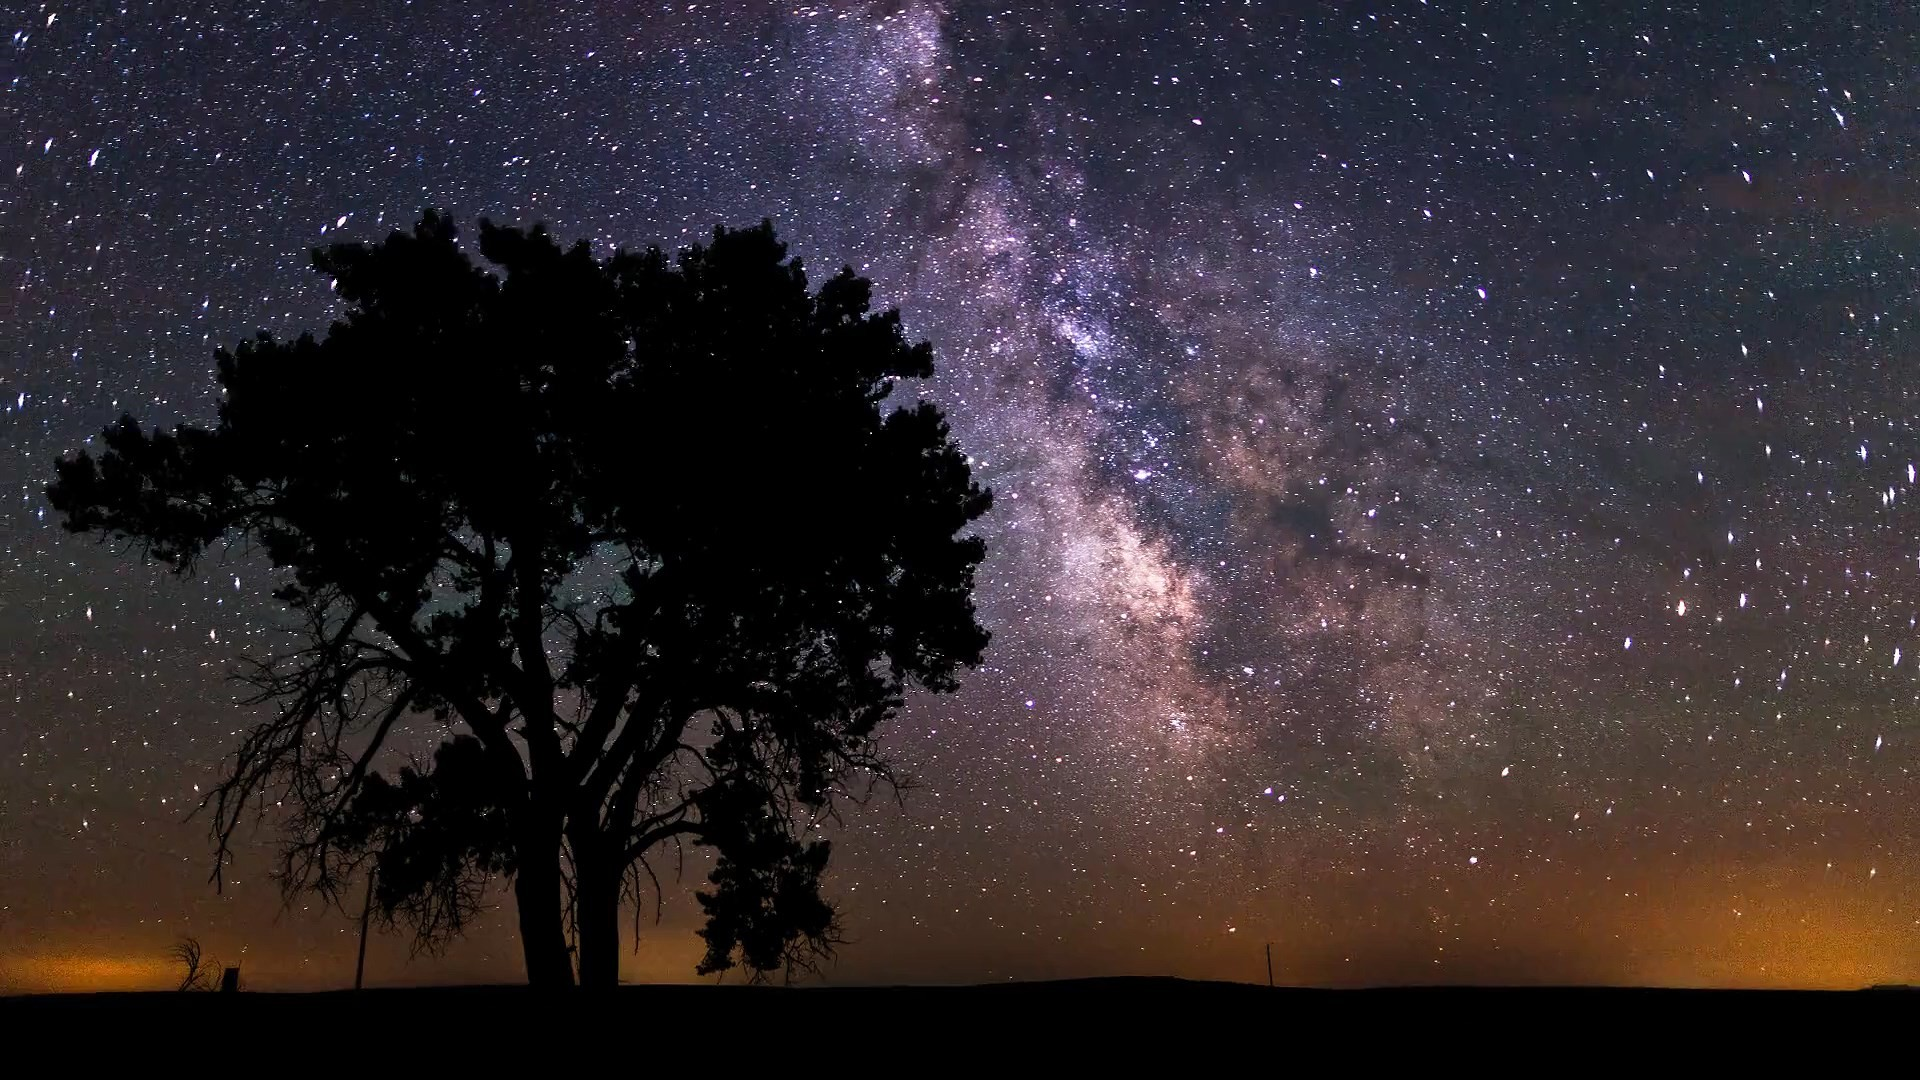 6 Awesome Cosmos Inspired Hd Wallpapers: Milky Way Wallpaper 1920x1080 (71+ Images